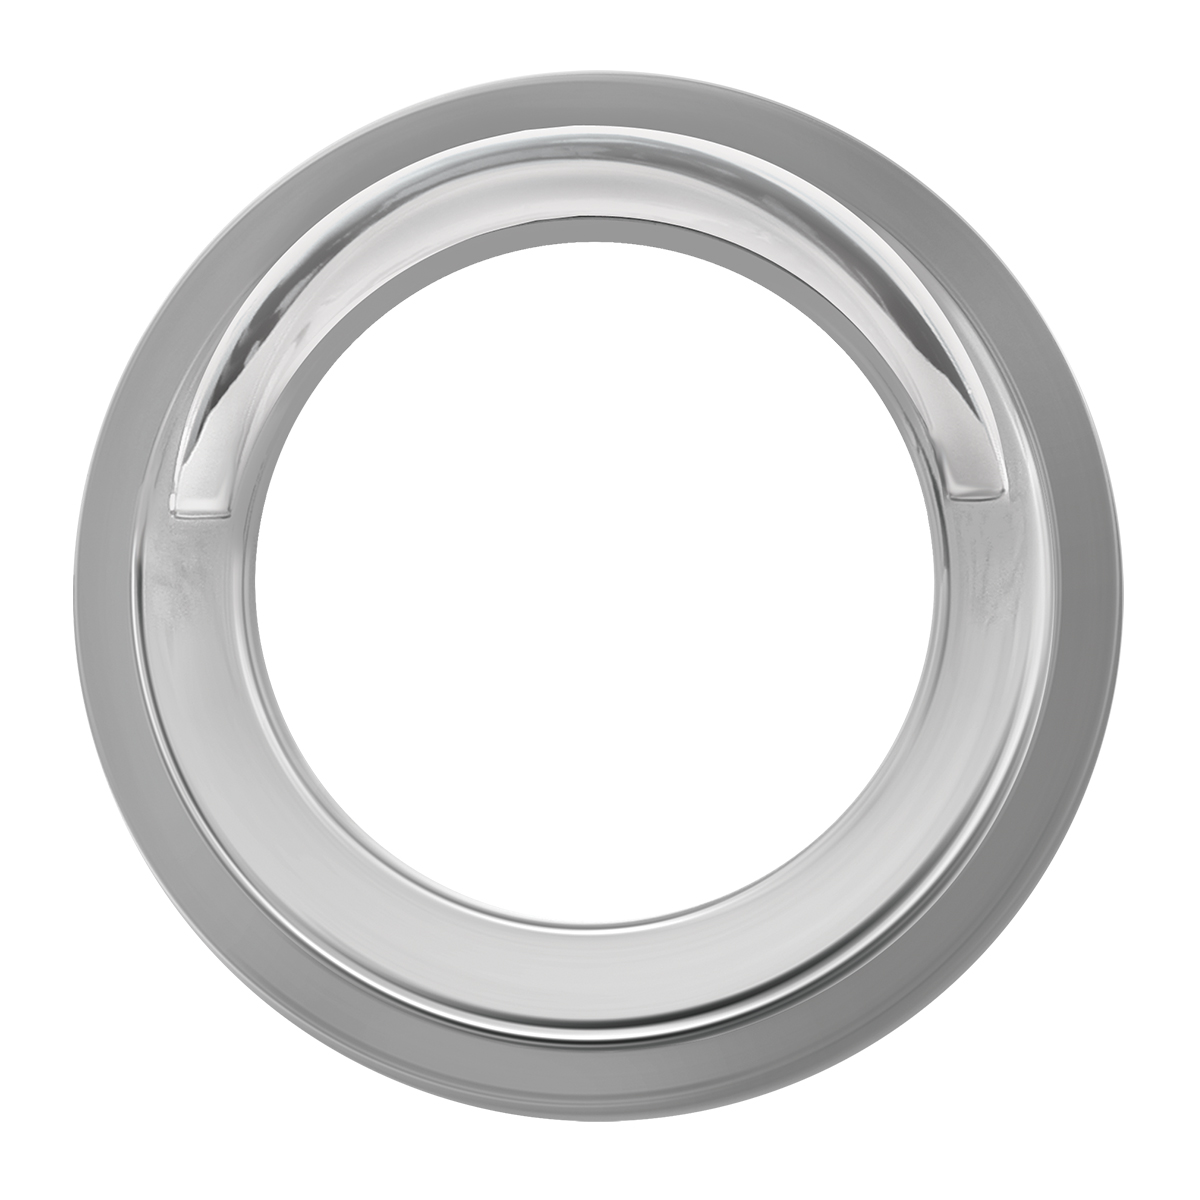 Chrome Plastic Gauge Cover w/ Visor for FL